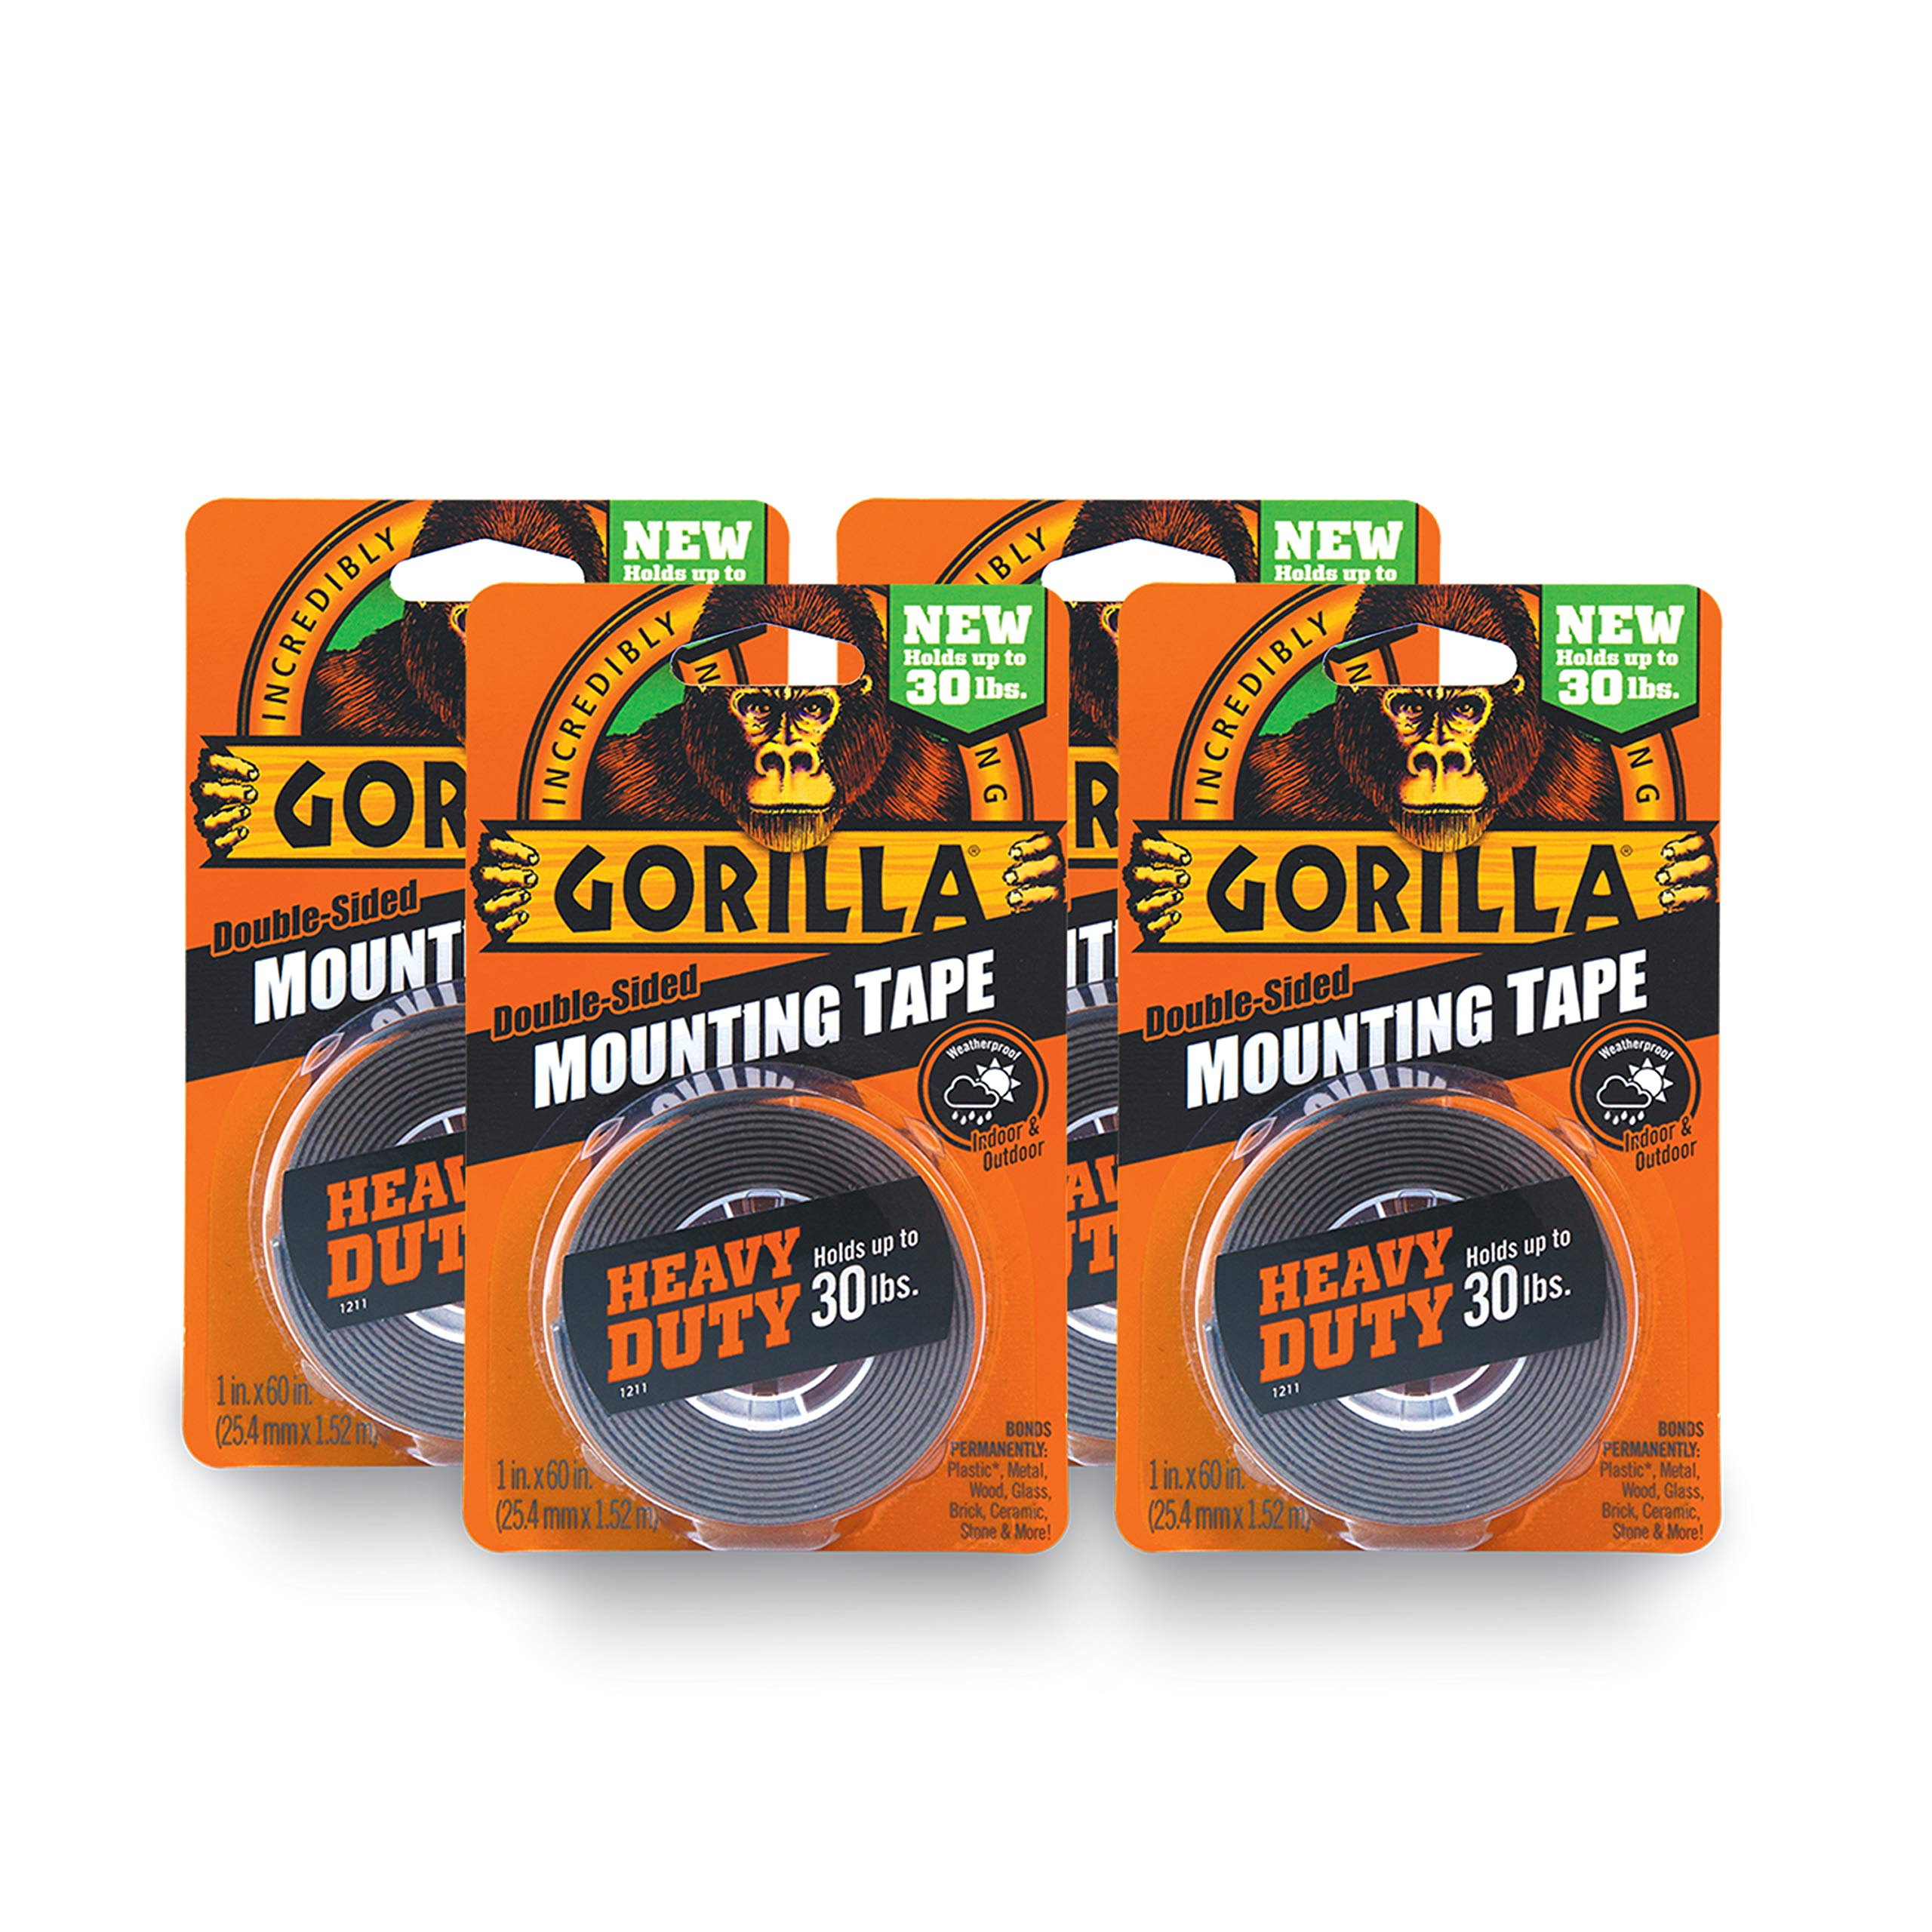 Gorilla Heavy Duty Double Sided Mounting Tape, 1 Inch x 60 Inches, Black(Pack of 4) by Gorilla